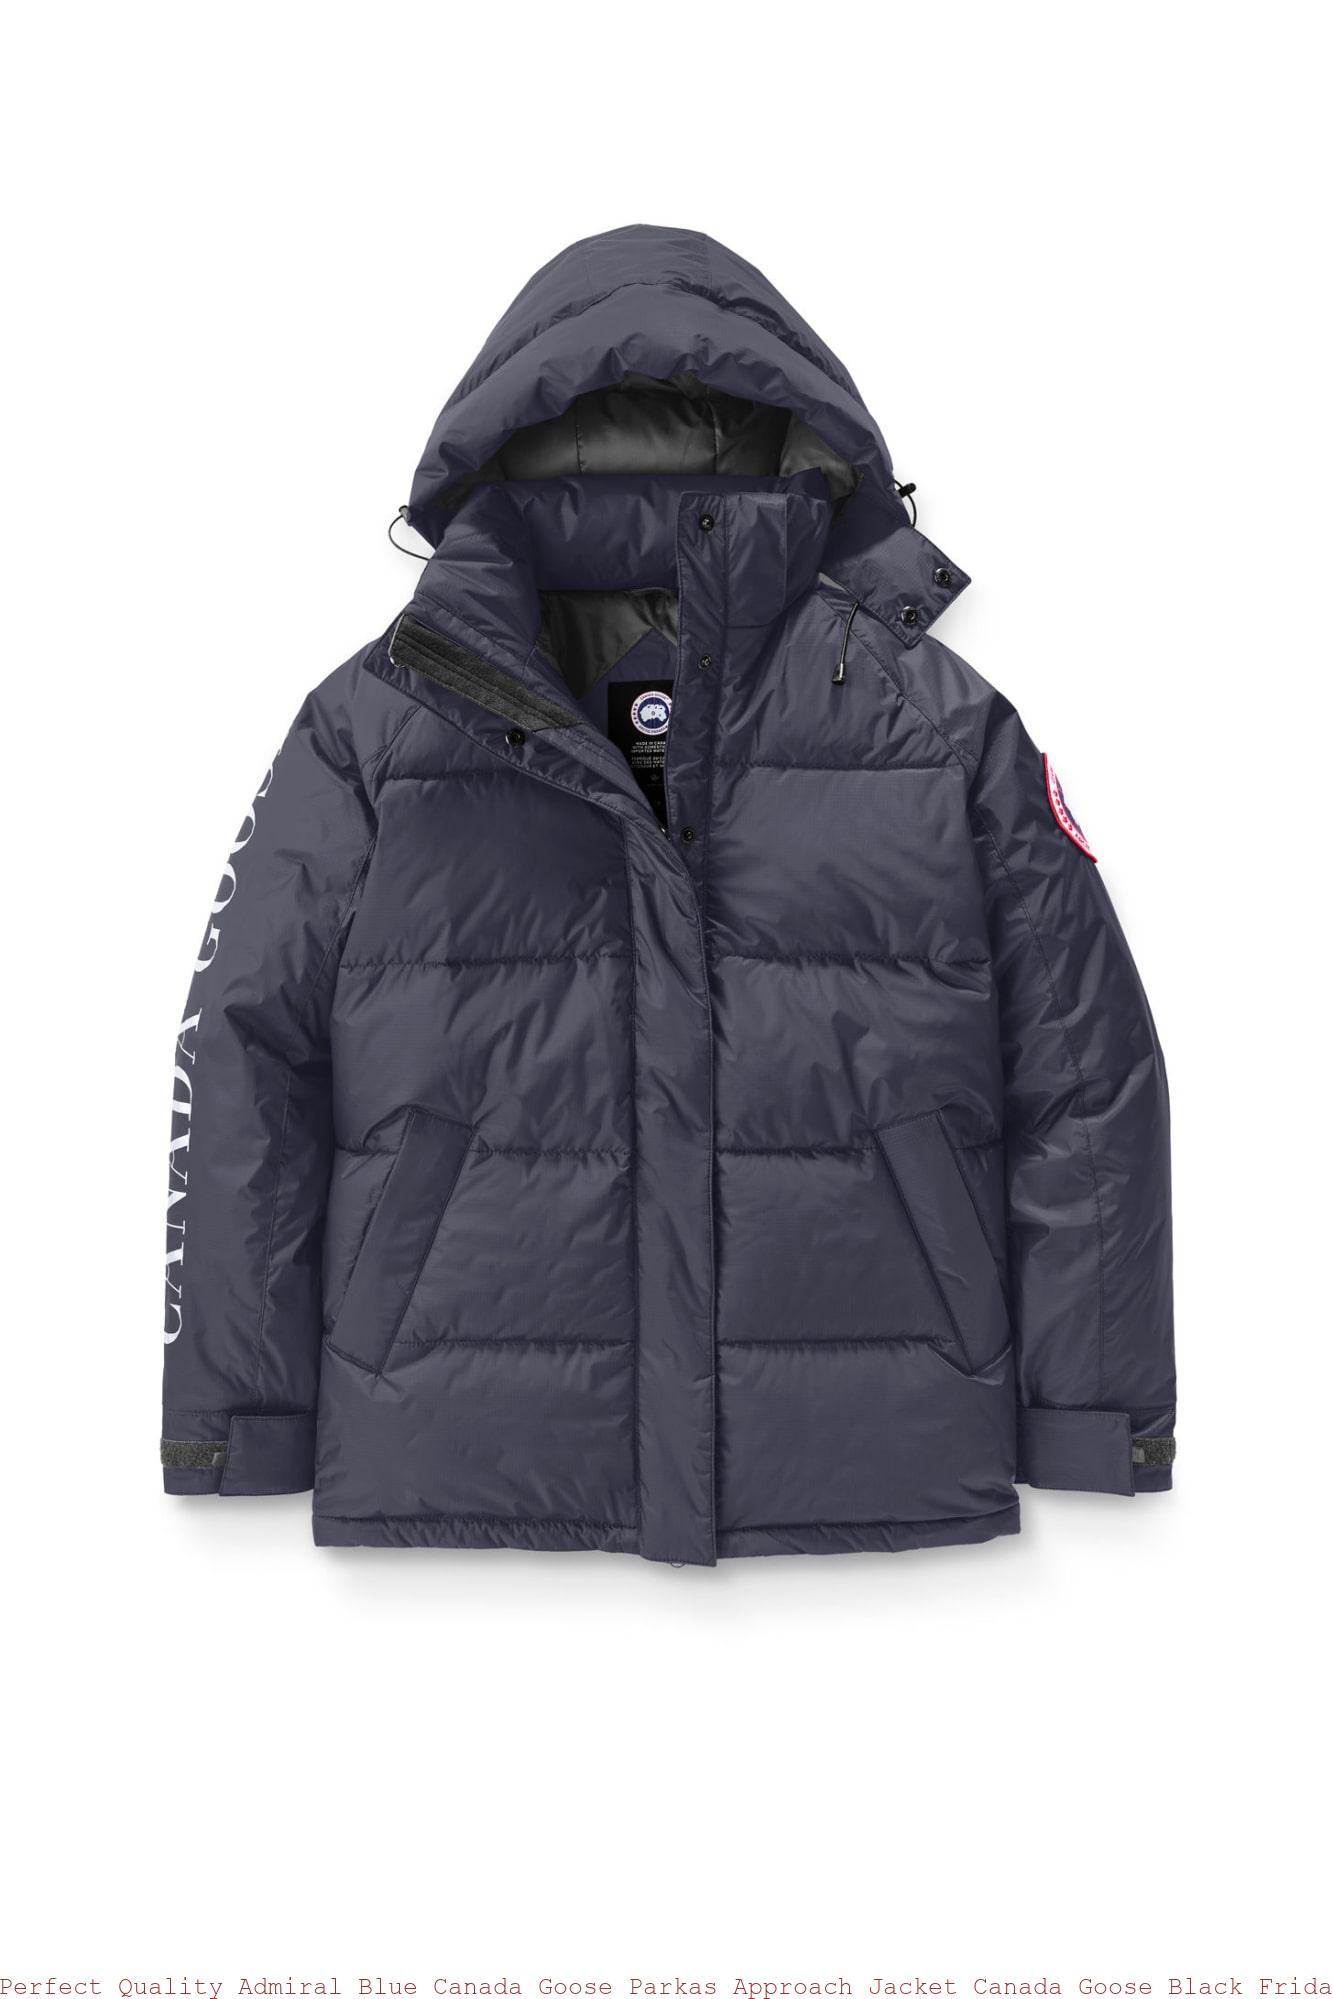 Perfect Quality Admiral Blue Canada Goose Parkas Approach